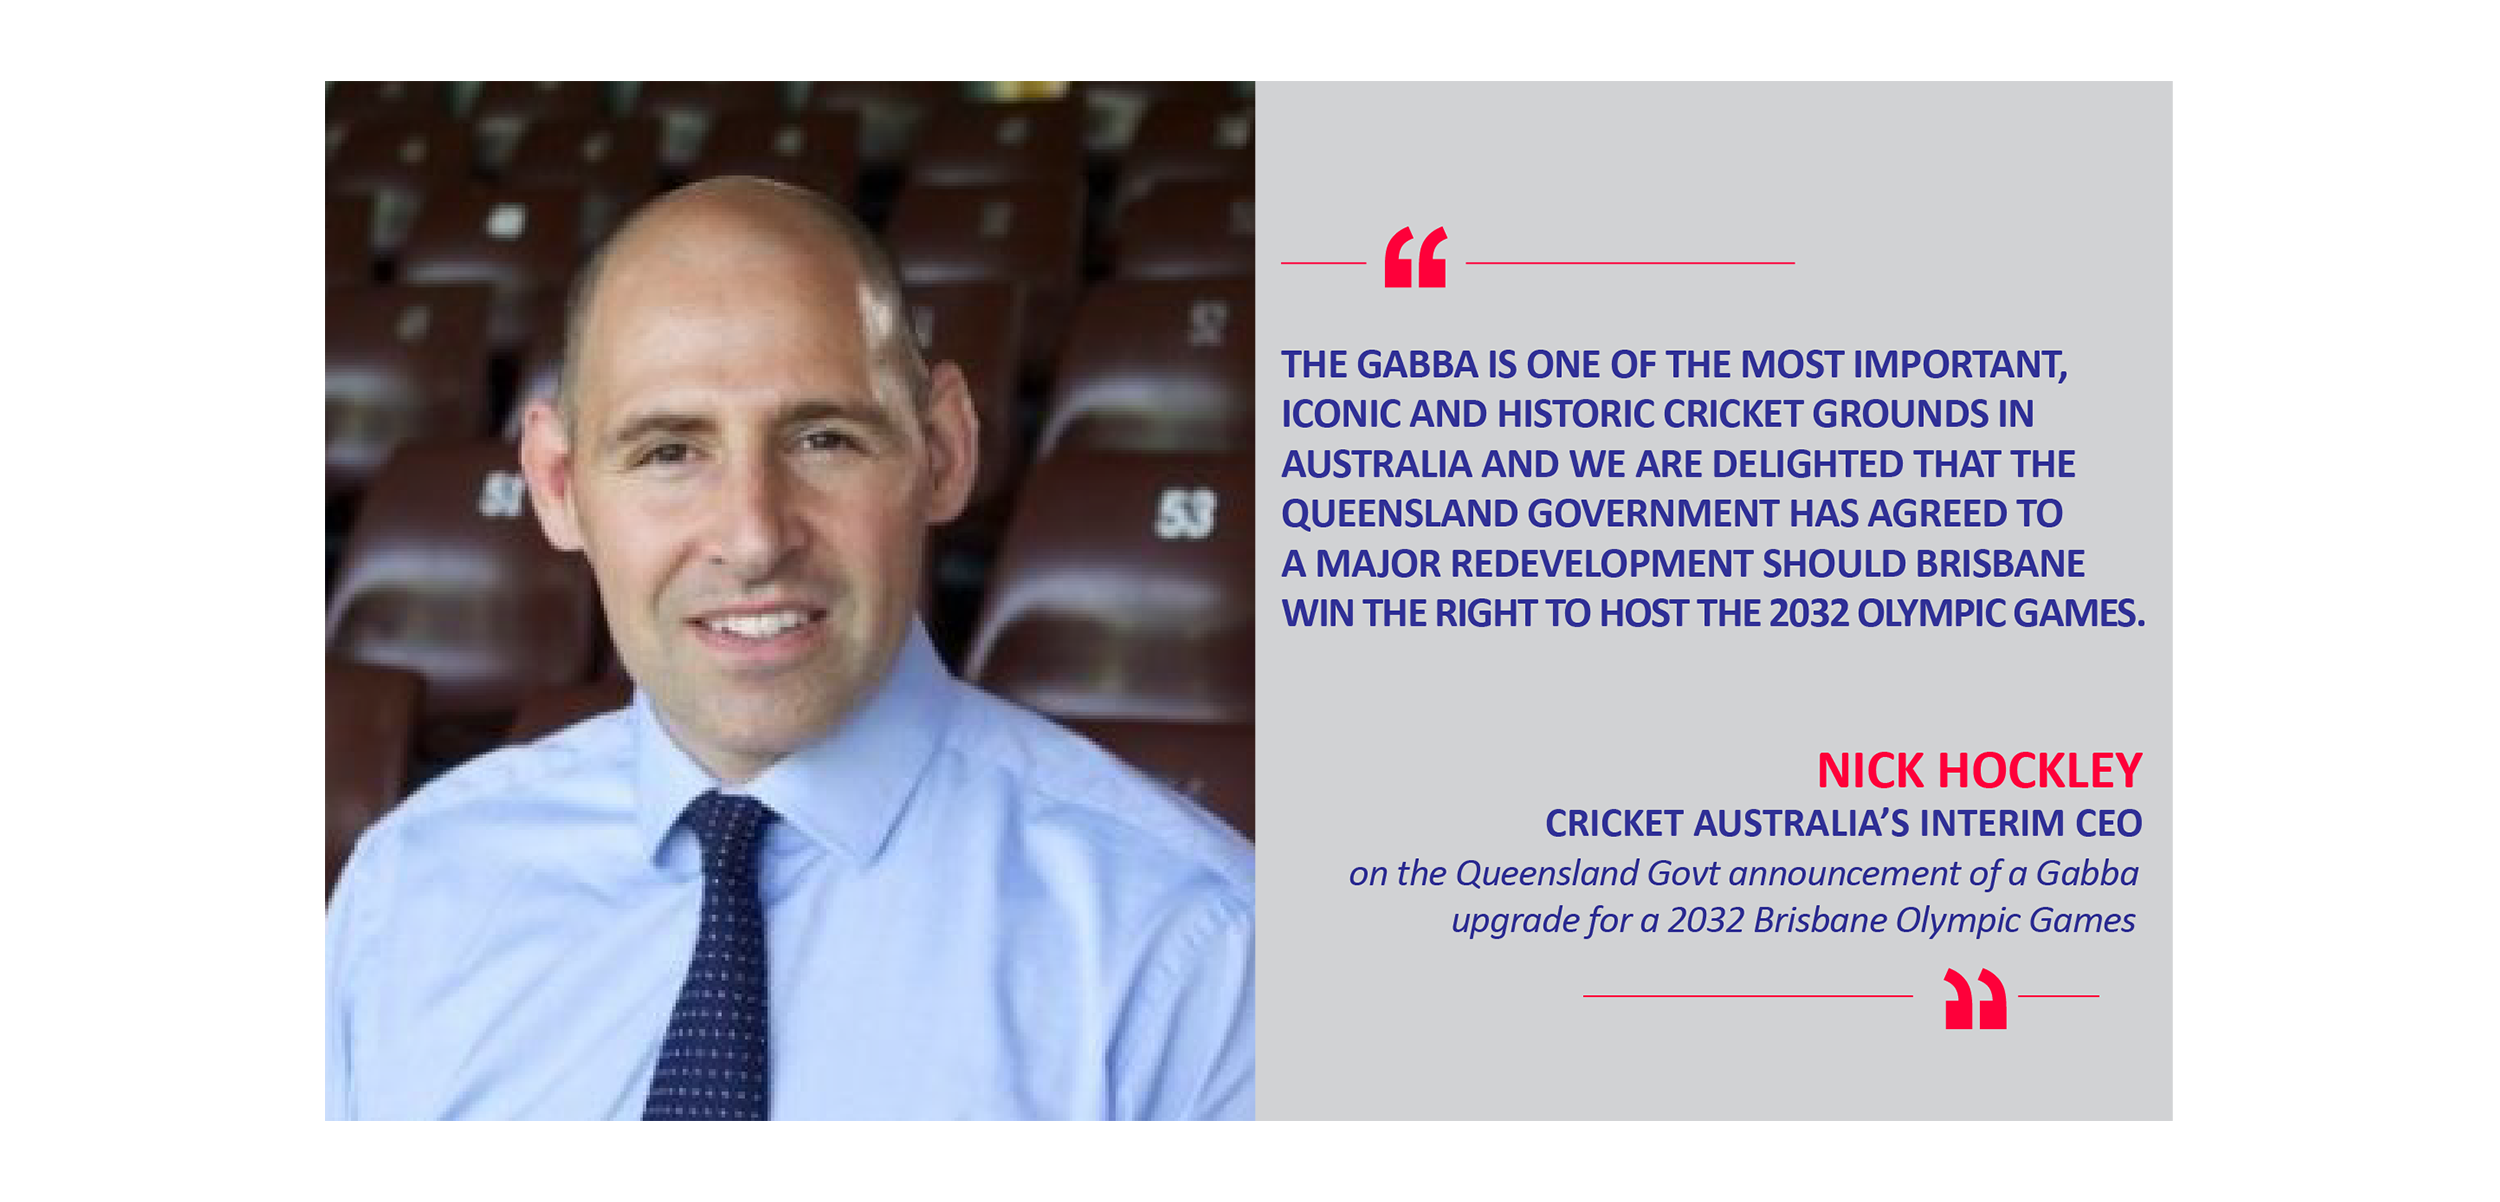 Nick Hockley, Cricket Australia's Interim CEO on the Queensland Govt announcement of a Gabba upgrade for a 2032 Brisbane Olympic Games